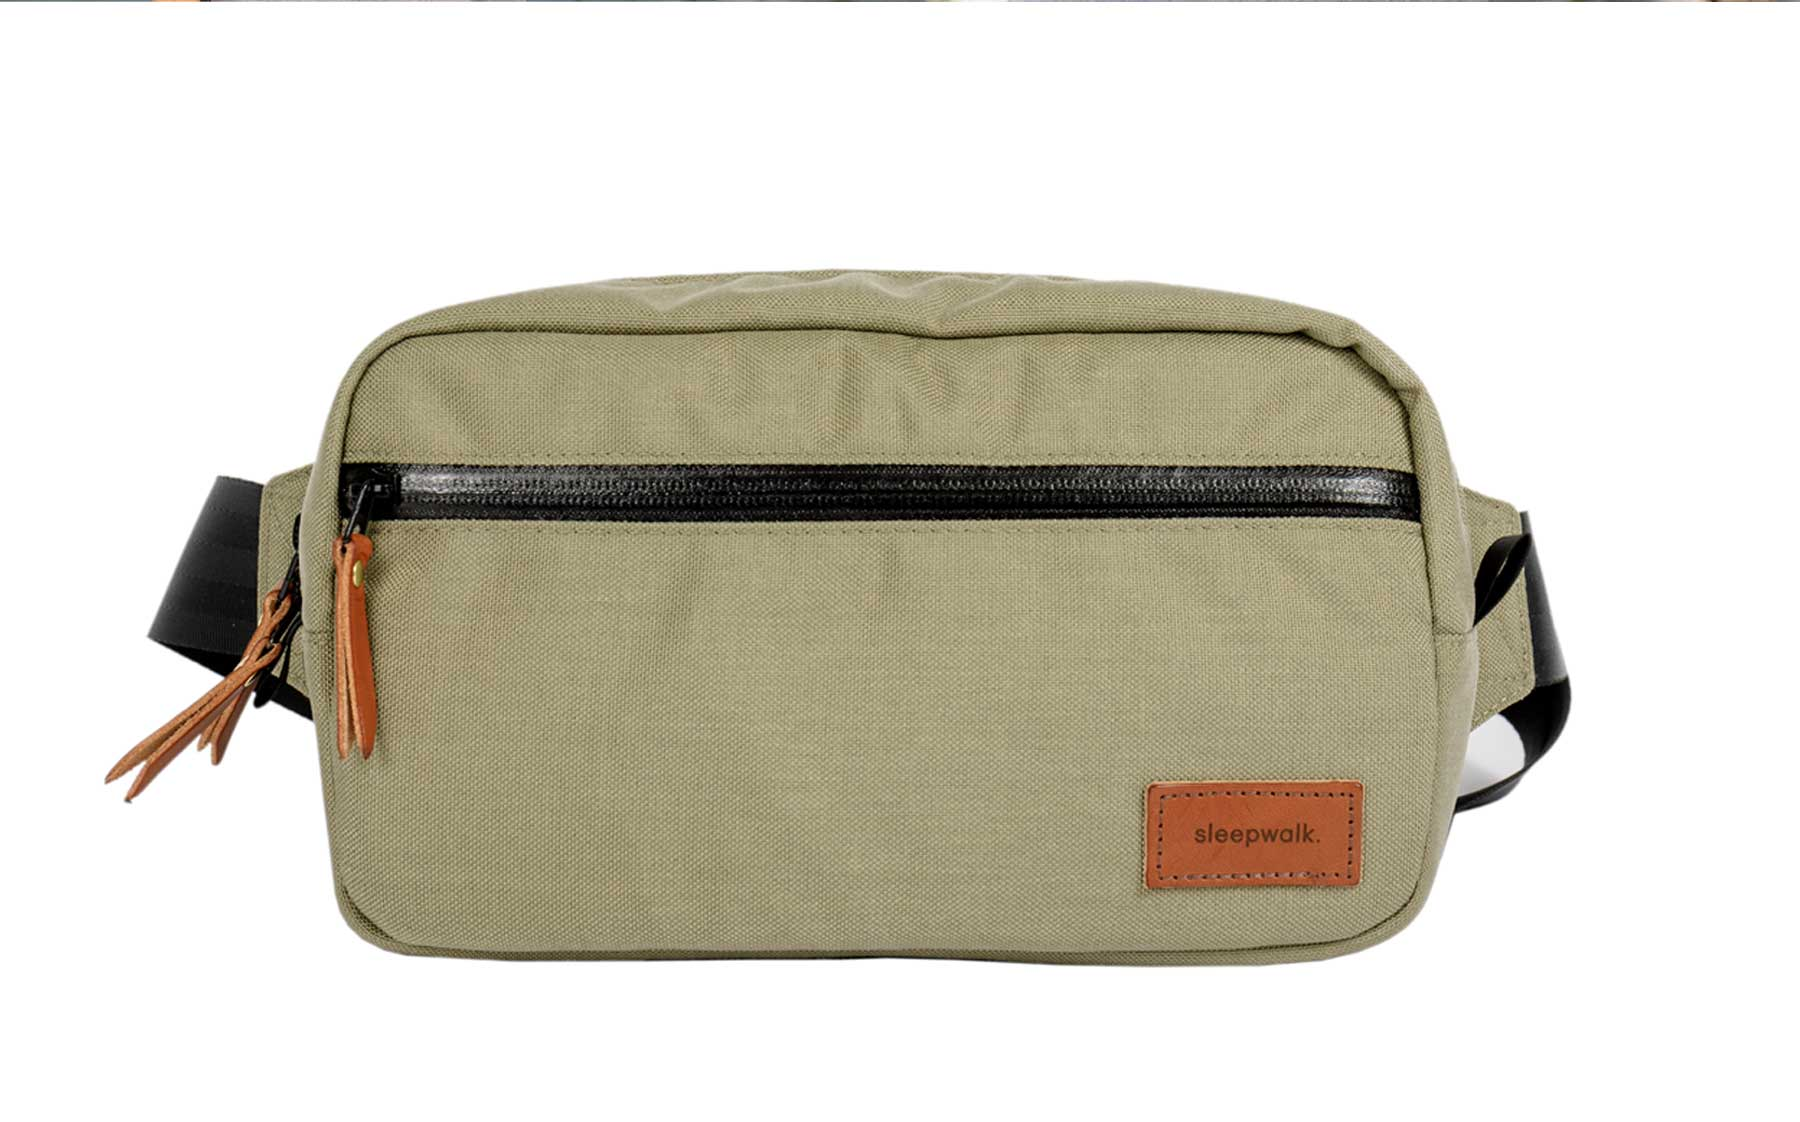 sleepwalk camera sling pack sage tan